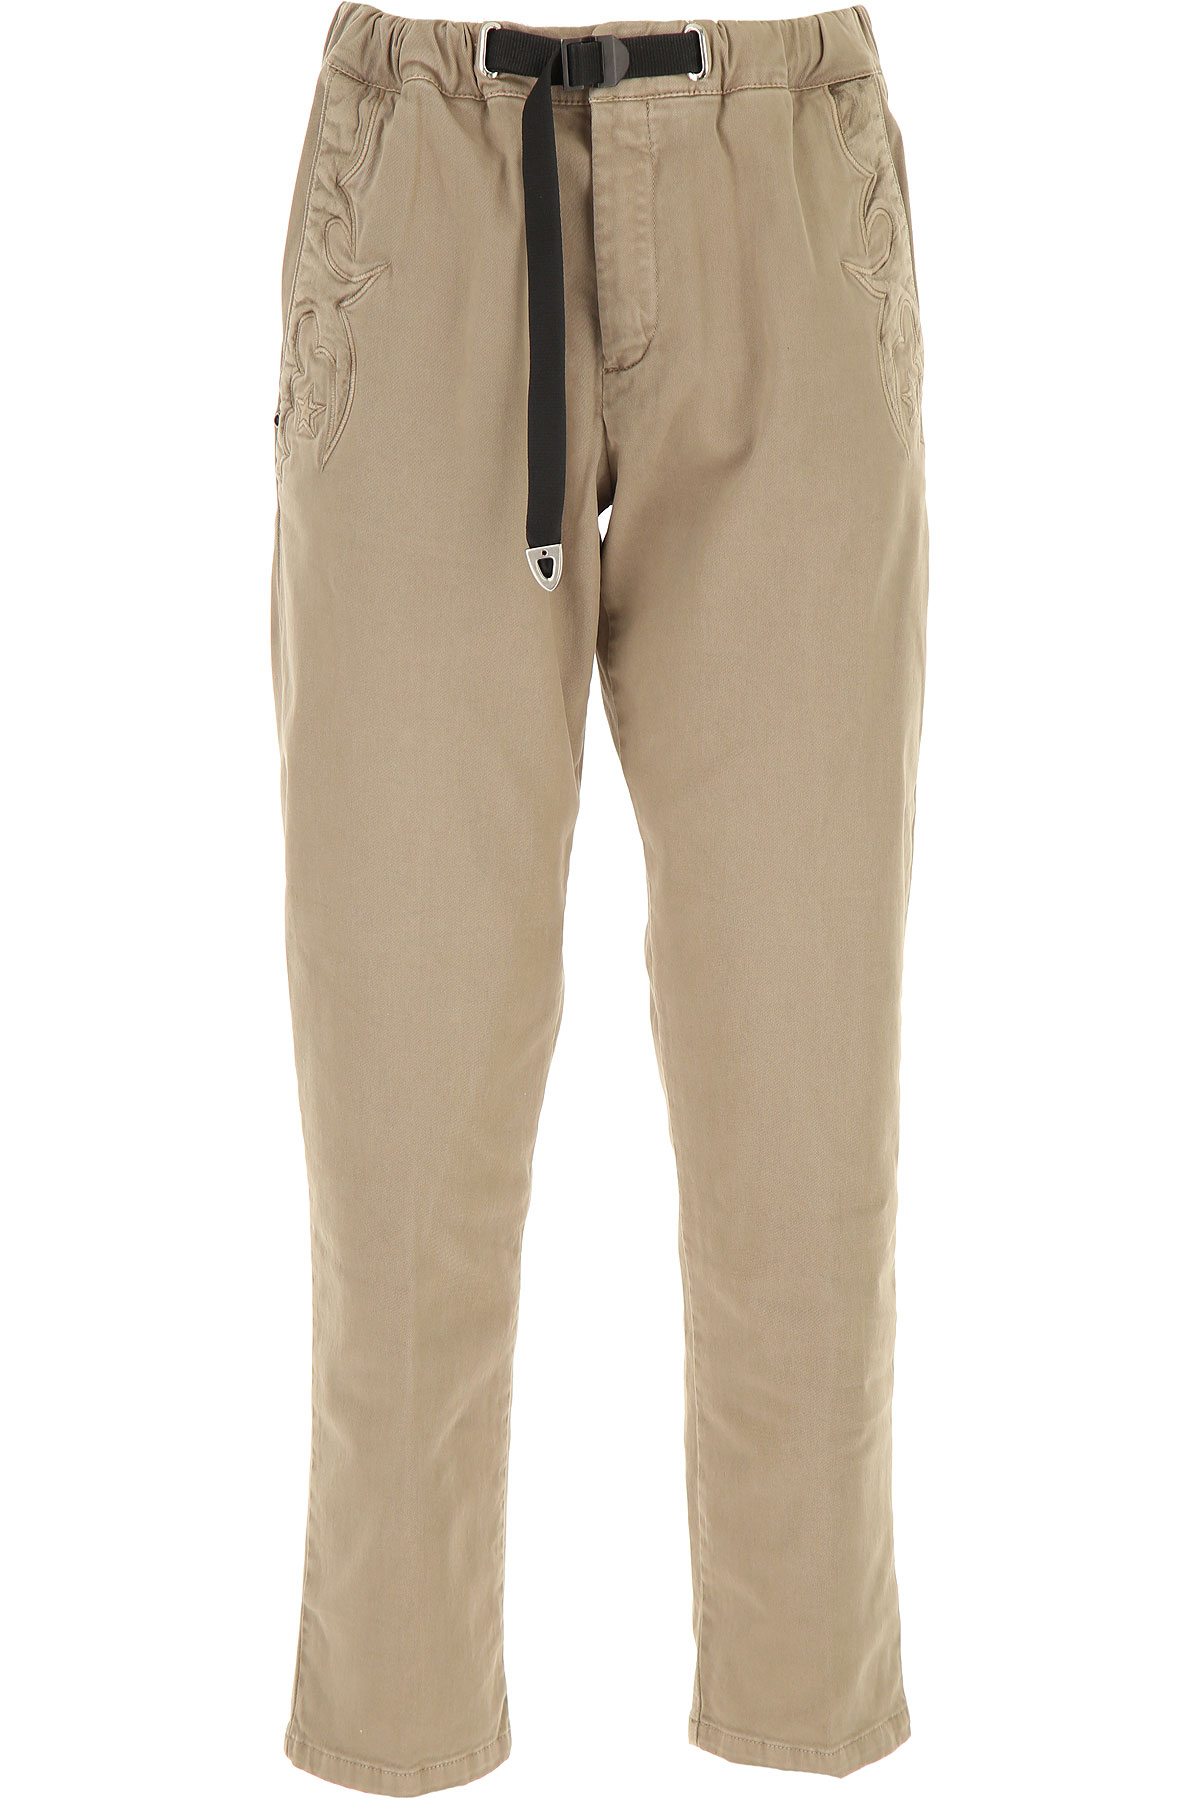 White Sand Pants for Women, Beige, Cotton, 2019, 28 30